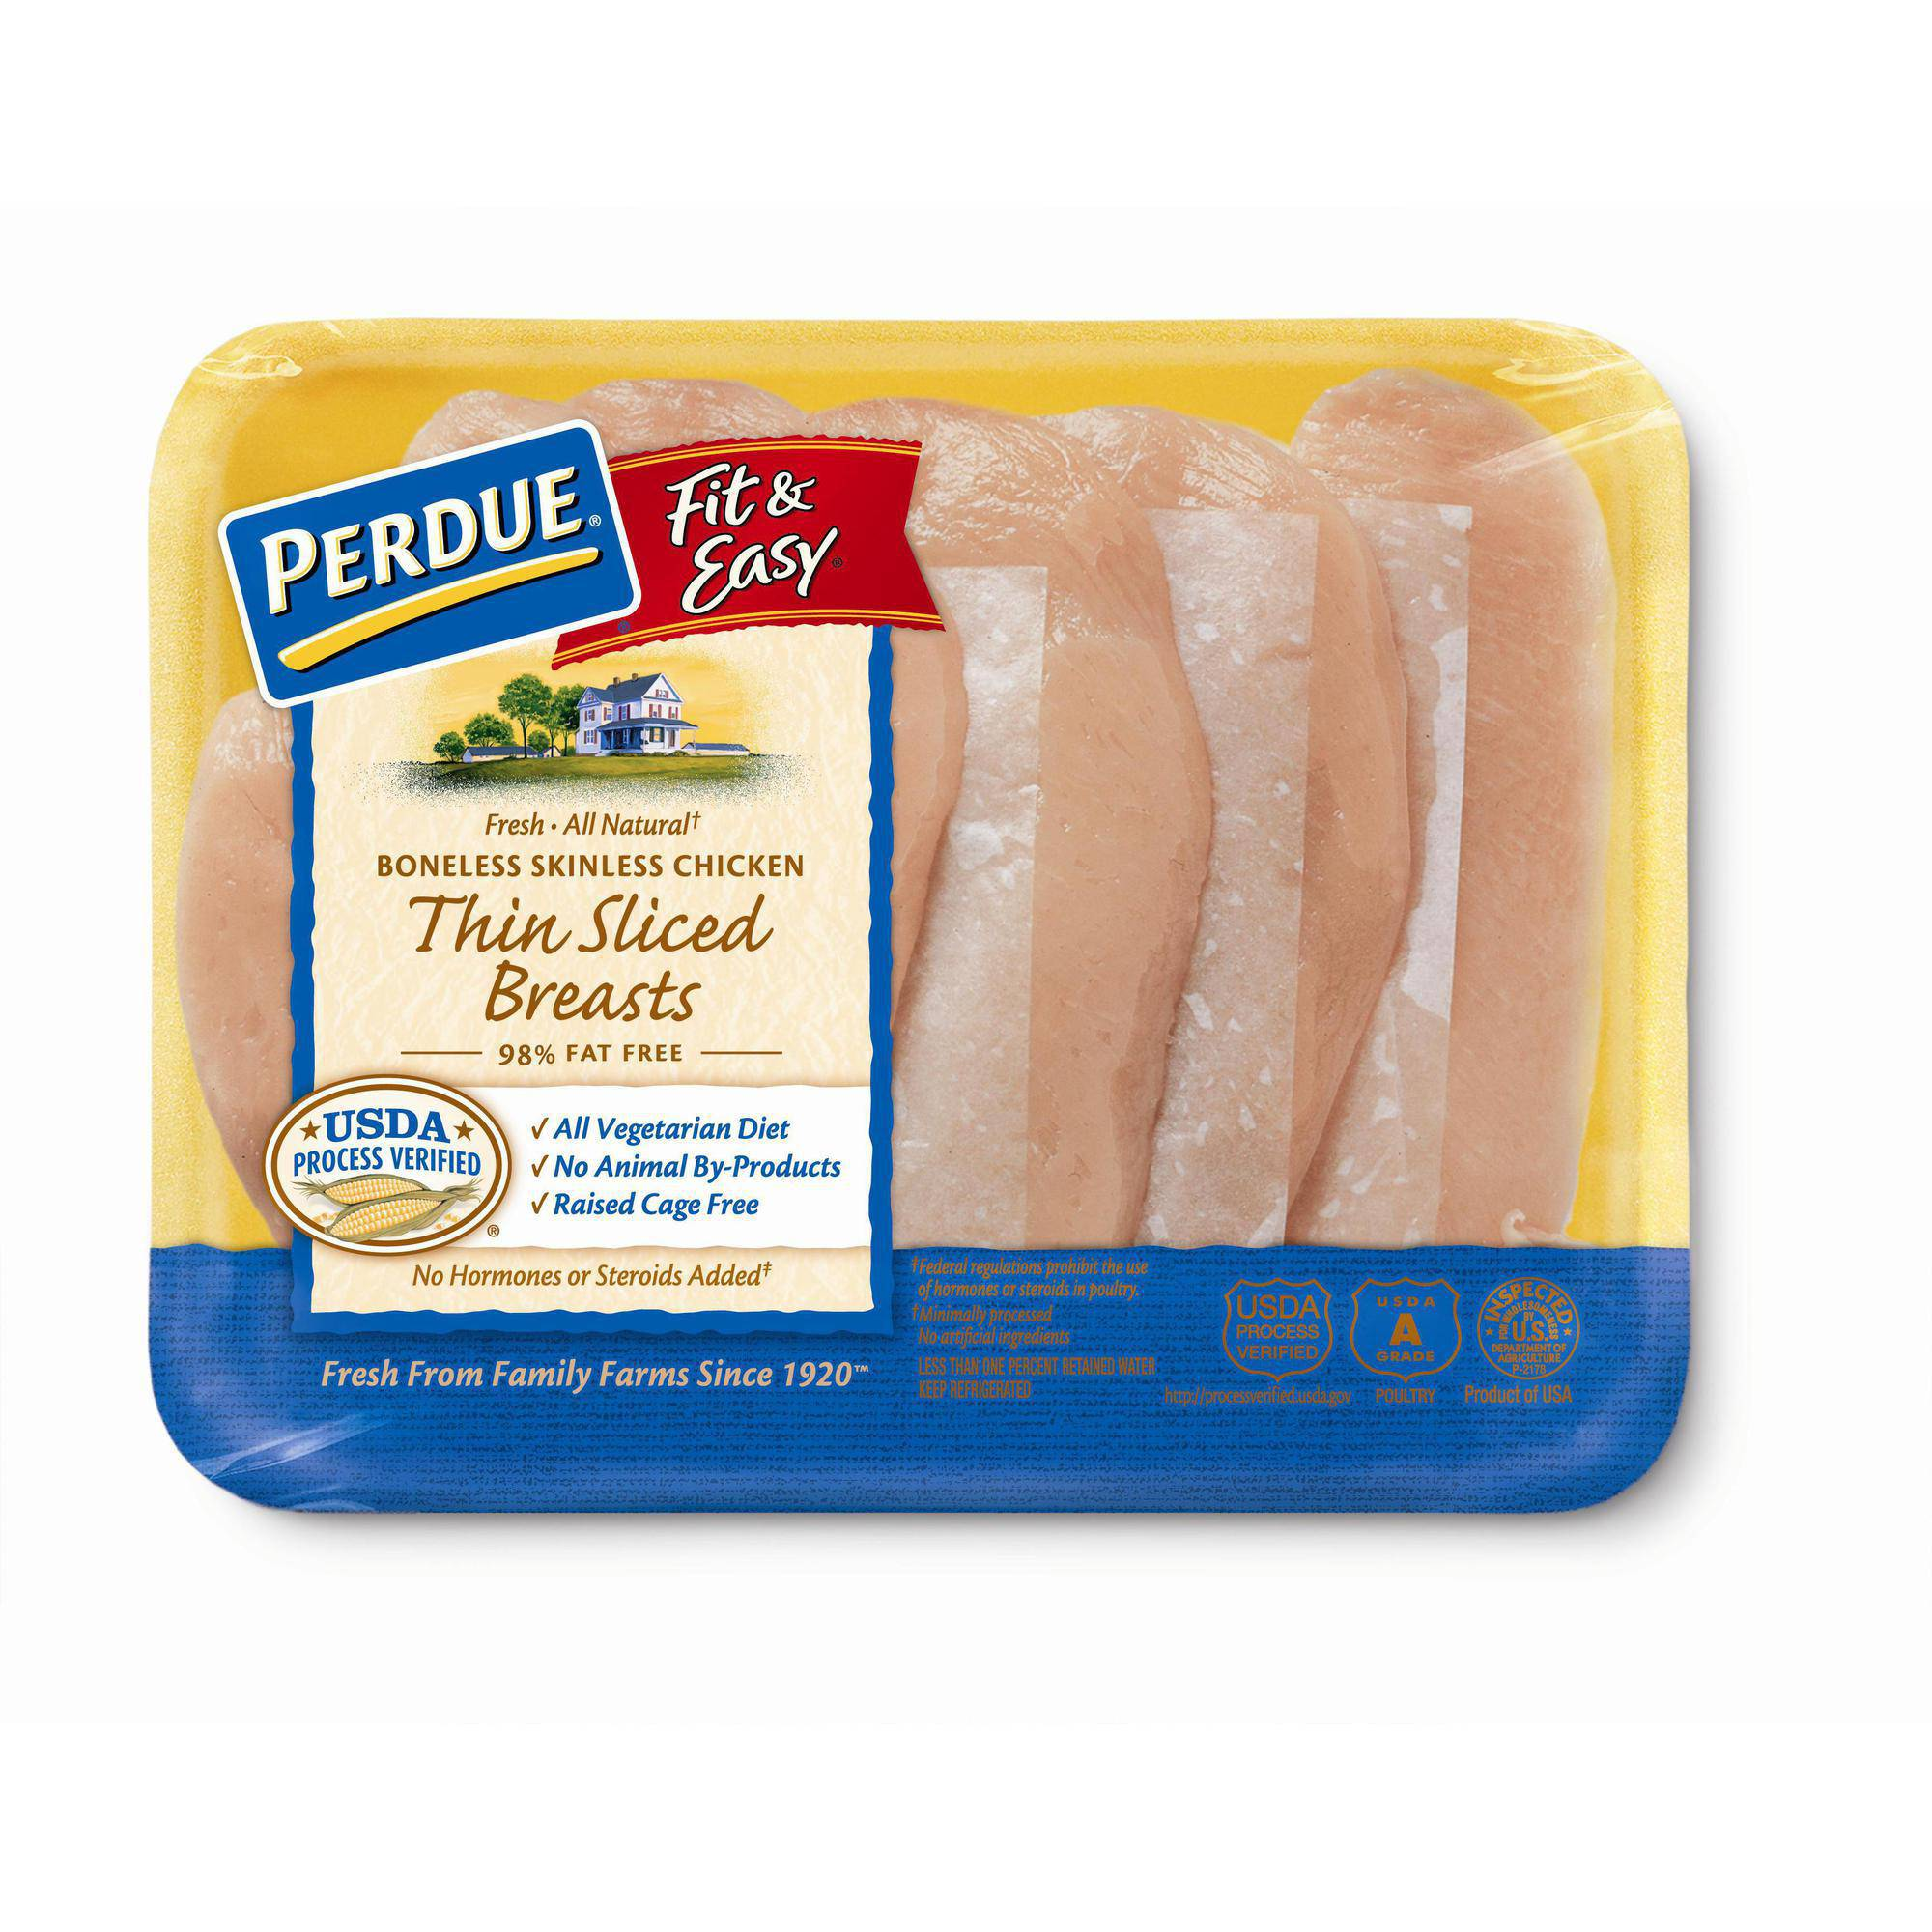 Perdue Bedroom Furniture Perdue Fit Easy Boneless Skinless Thin Sliced Chicken Breasts